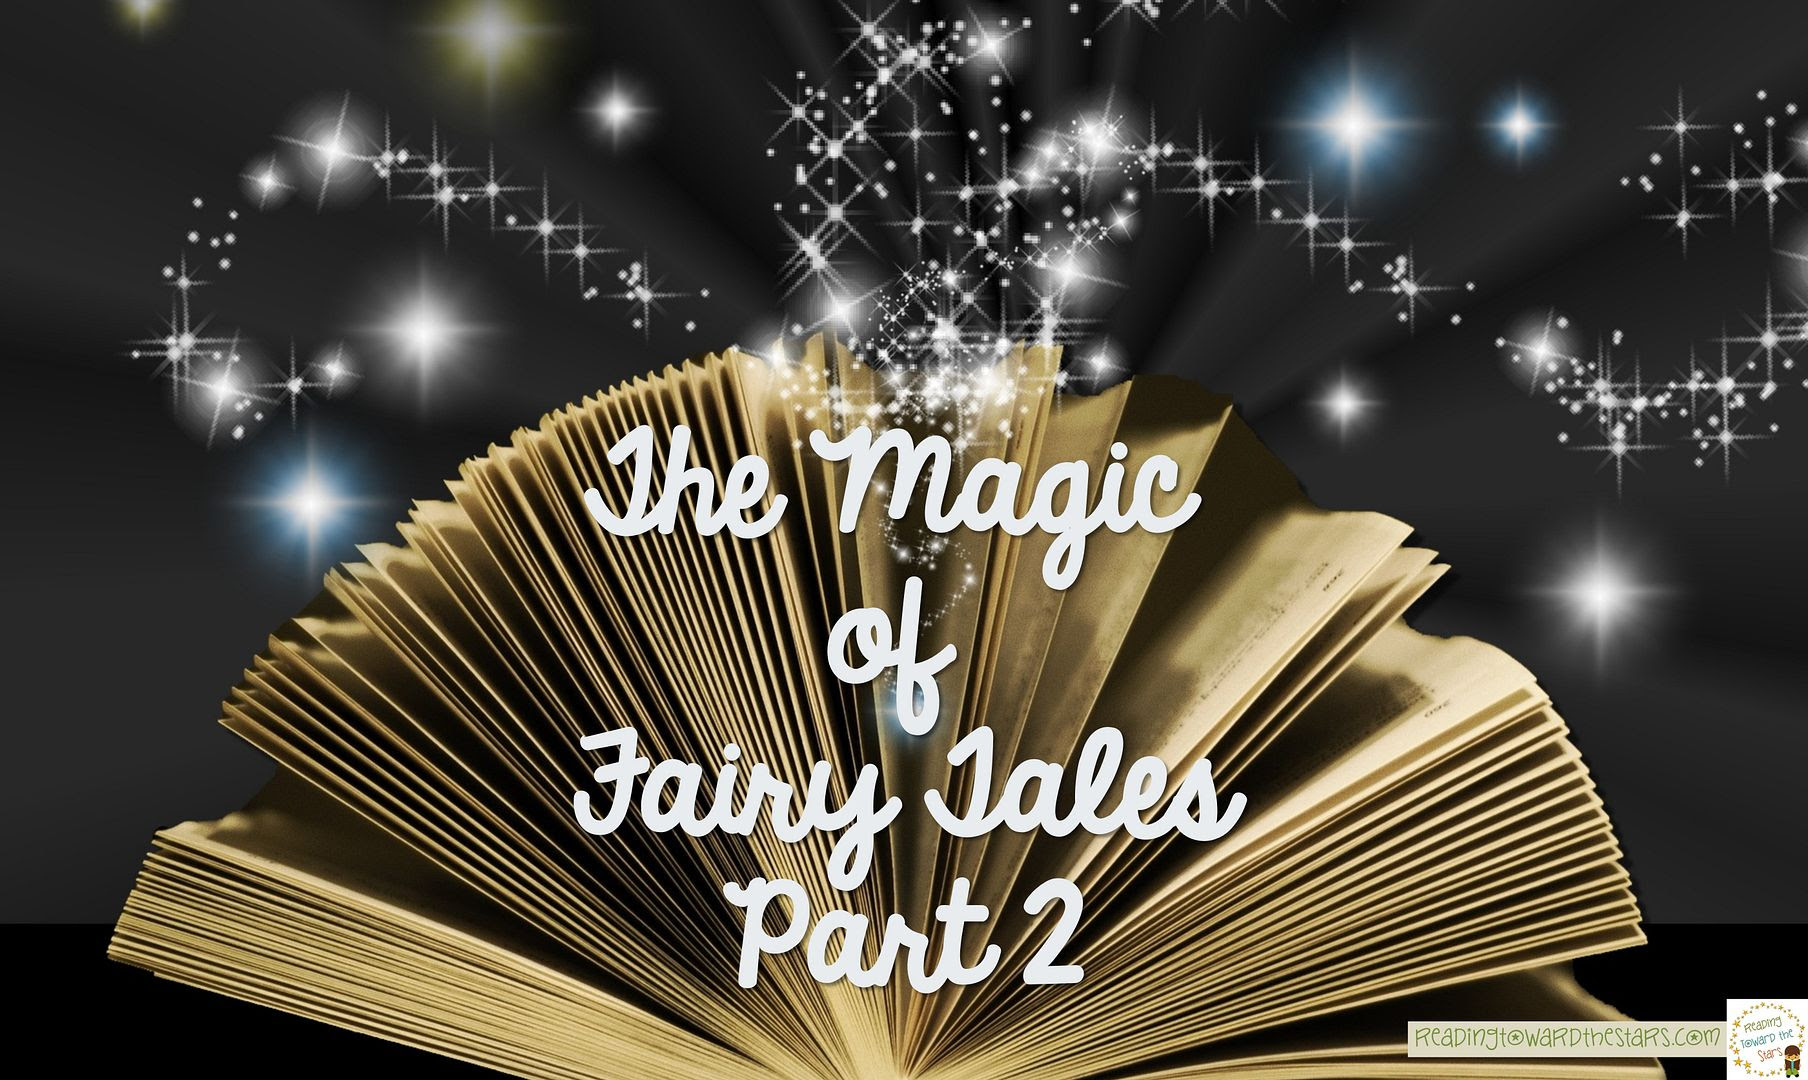 Fairy tales are great for helping with various comprehension strategies. The simplicity of them helps readers understand some tricky skills.